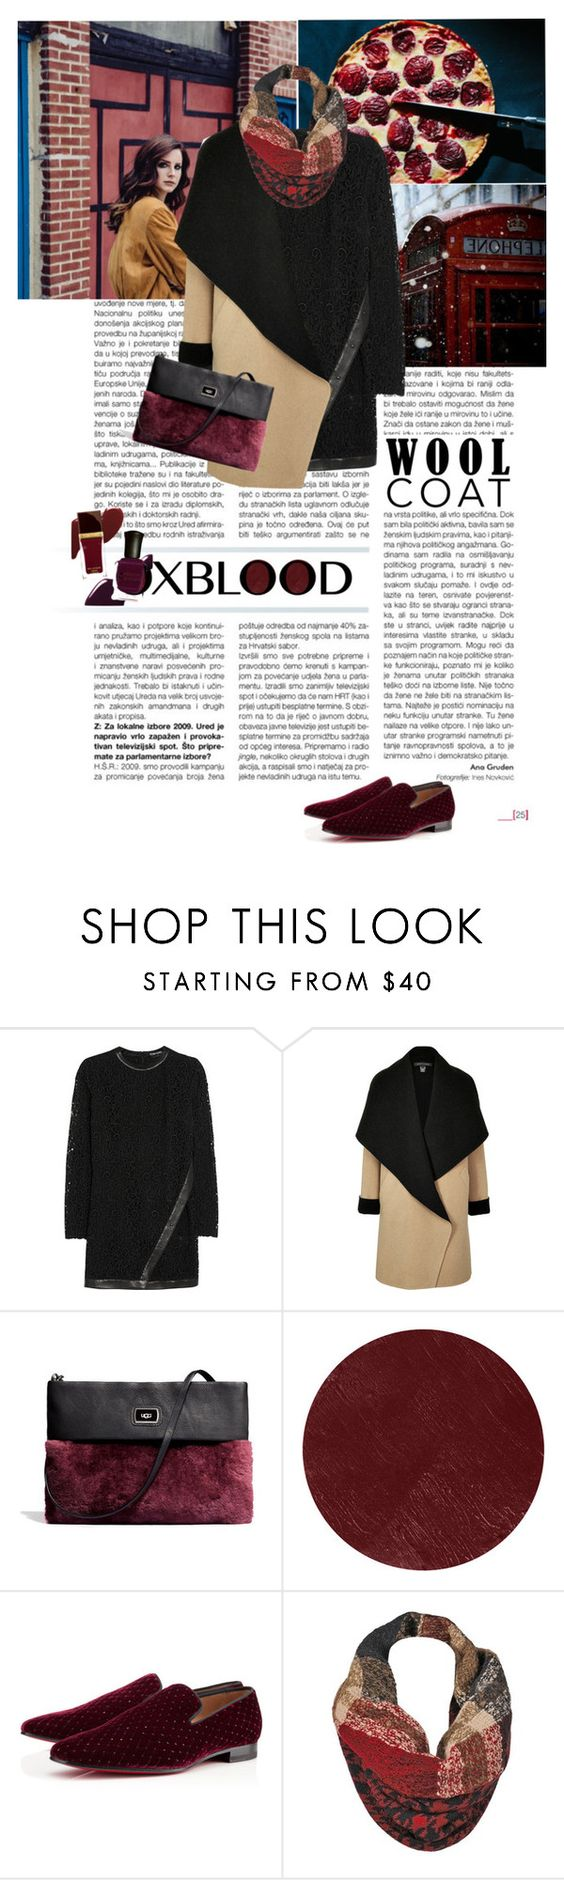 """""""Getting darker and darker"""" by elberethgilthoniel ❤ liked on Polyvore featuring Tom Ford, Ralph Lauren Black Label, UGG Australia, Burberry, Christian Louboutin and Black Rivet"""